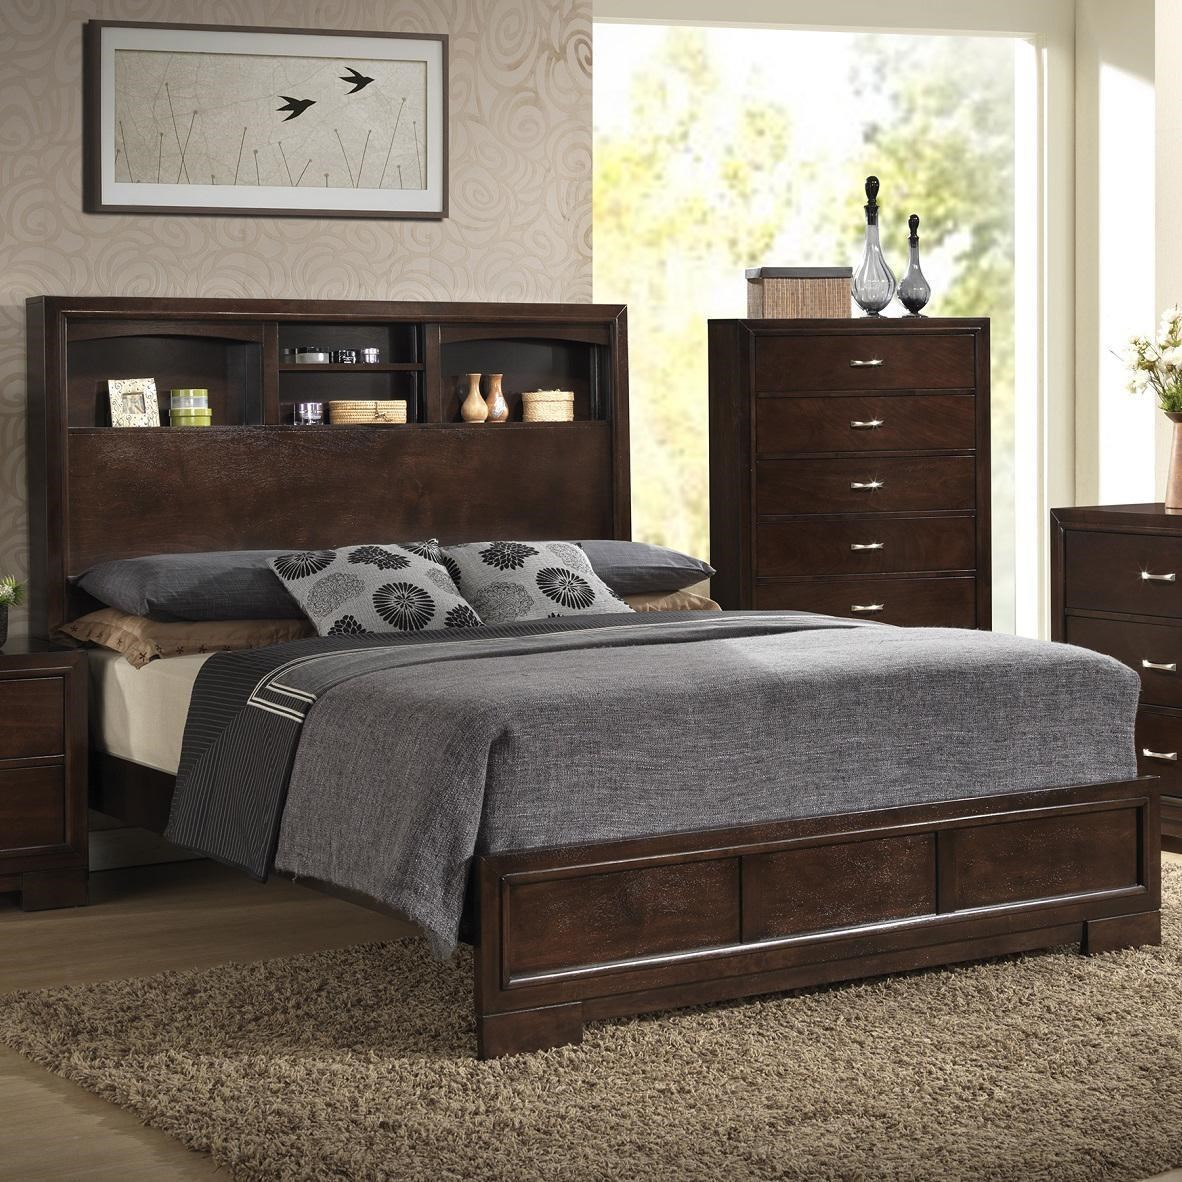 Bookcase Bed Bookie Contemporary Queen Bookcase Bed With 4 Shelves By Lifestyle At Royal Furniture